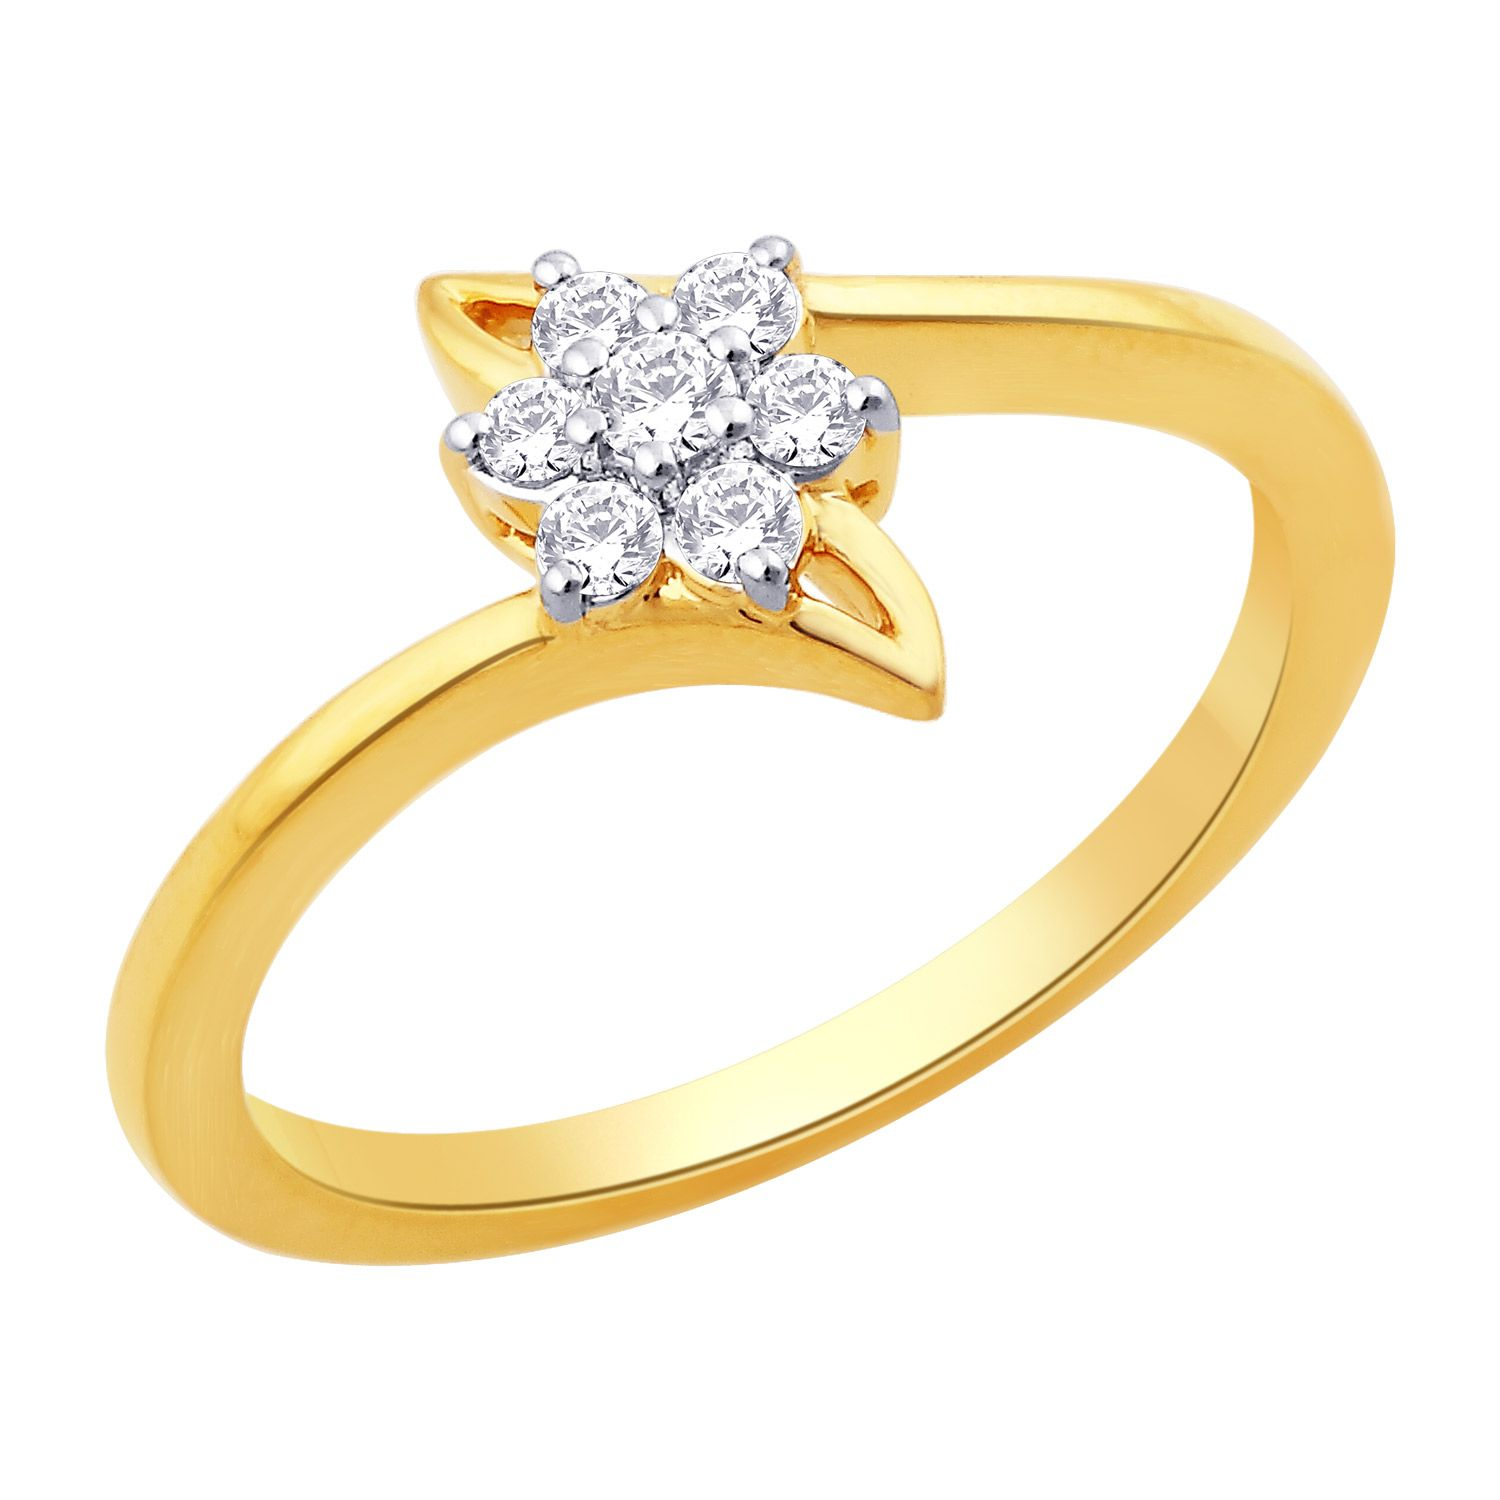 l category jones jewellery rings ring eternity gold material number white half product webstore ernest